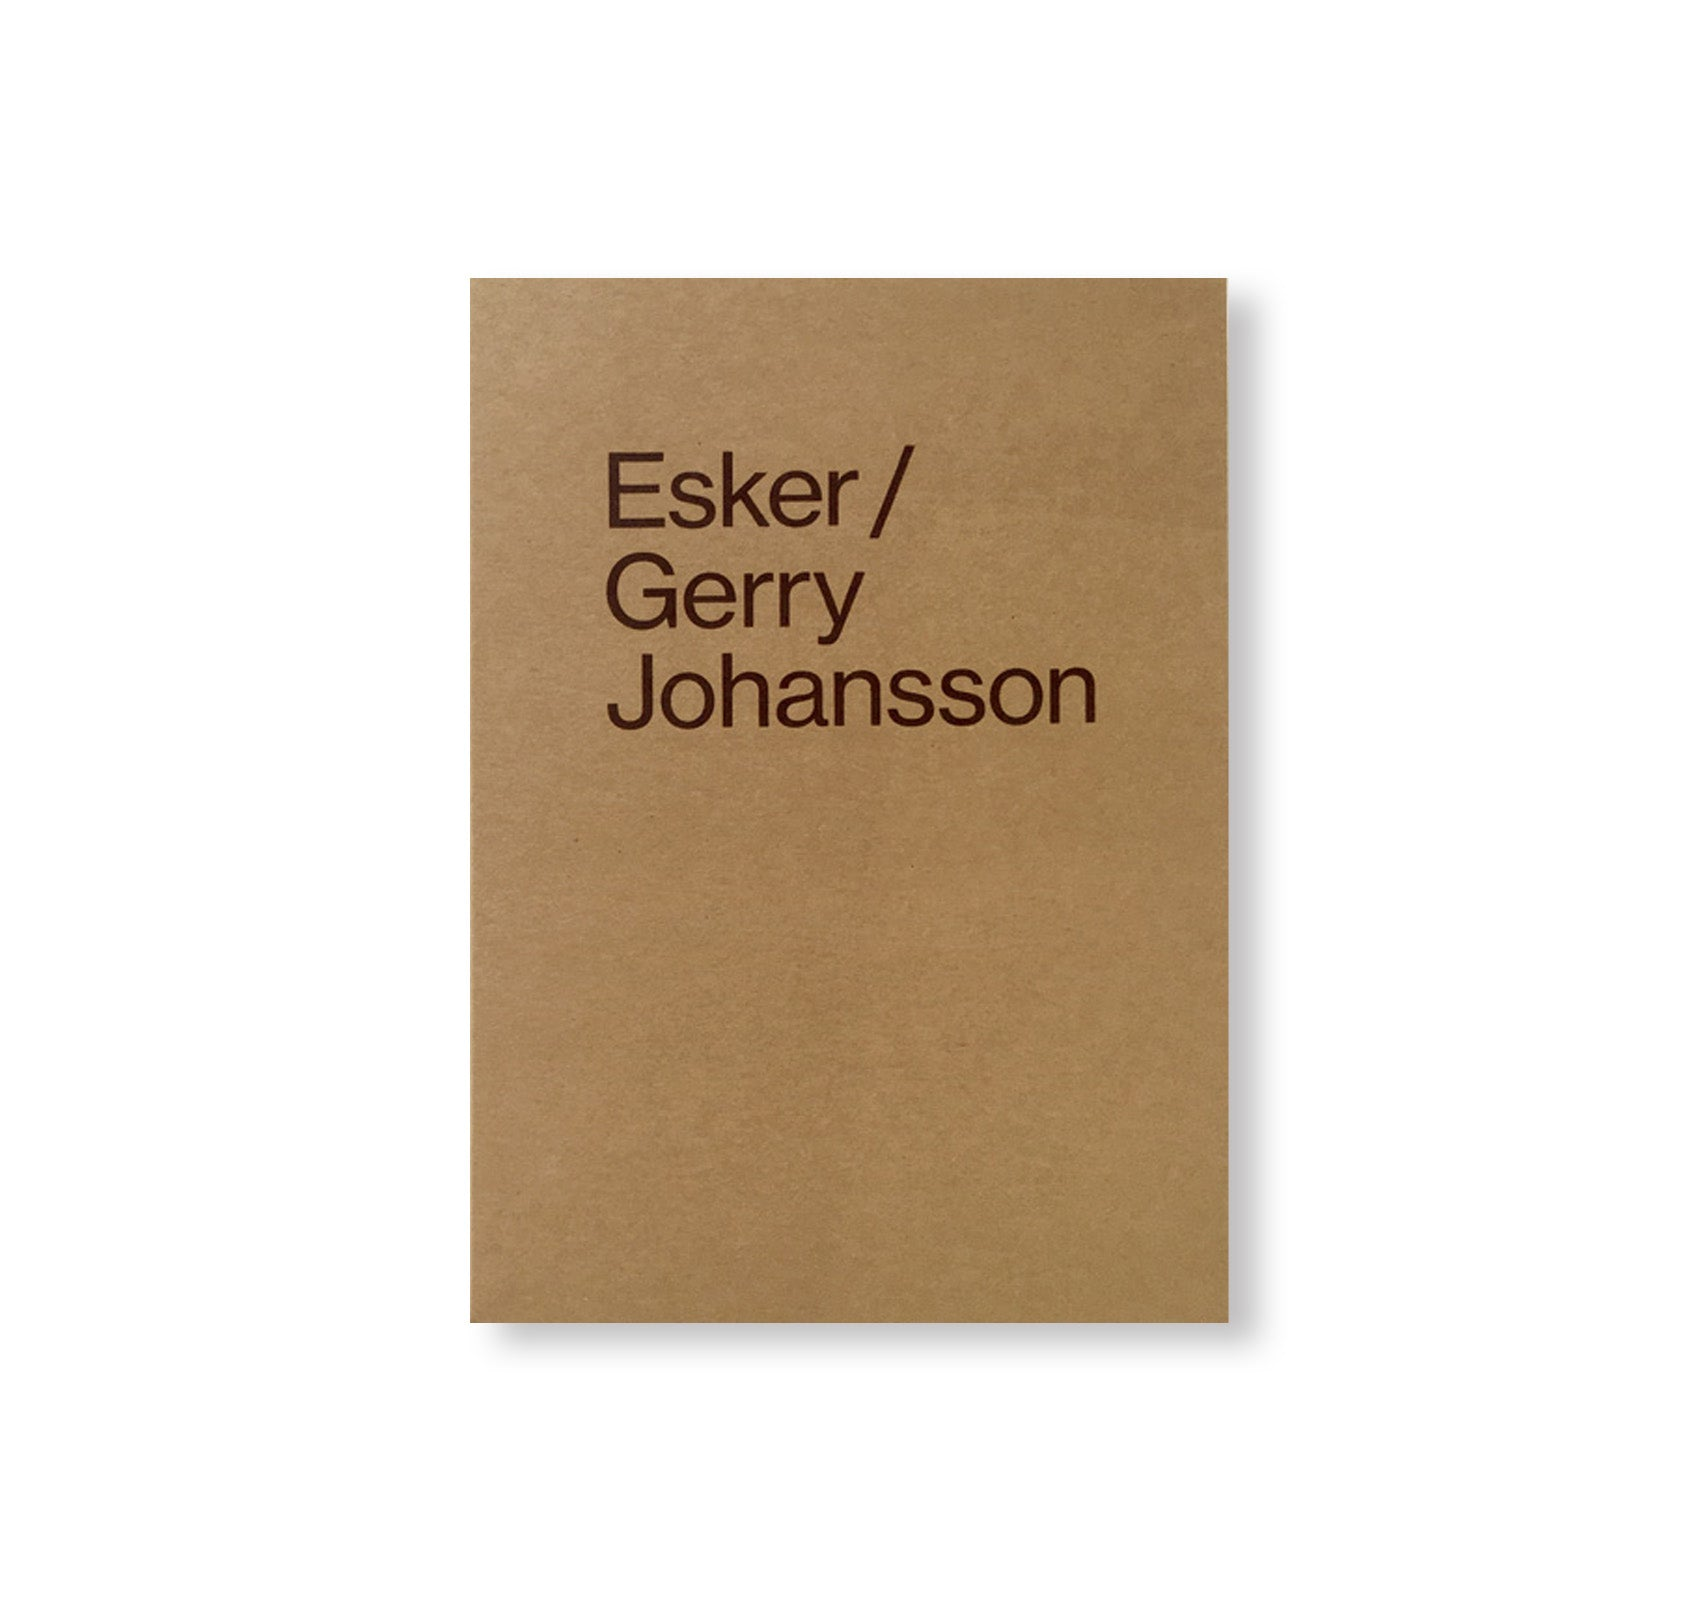 ESKER by Gerry Johansson [SIGNED]